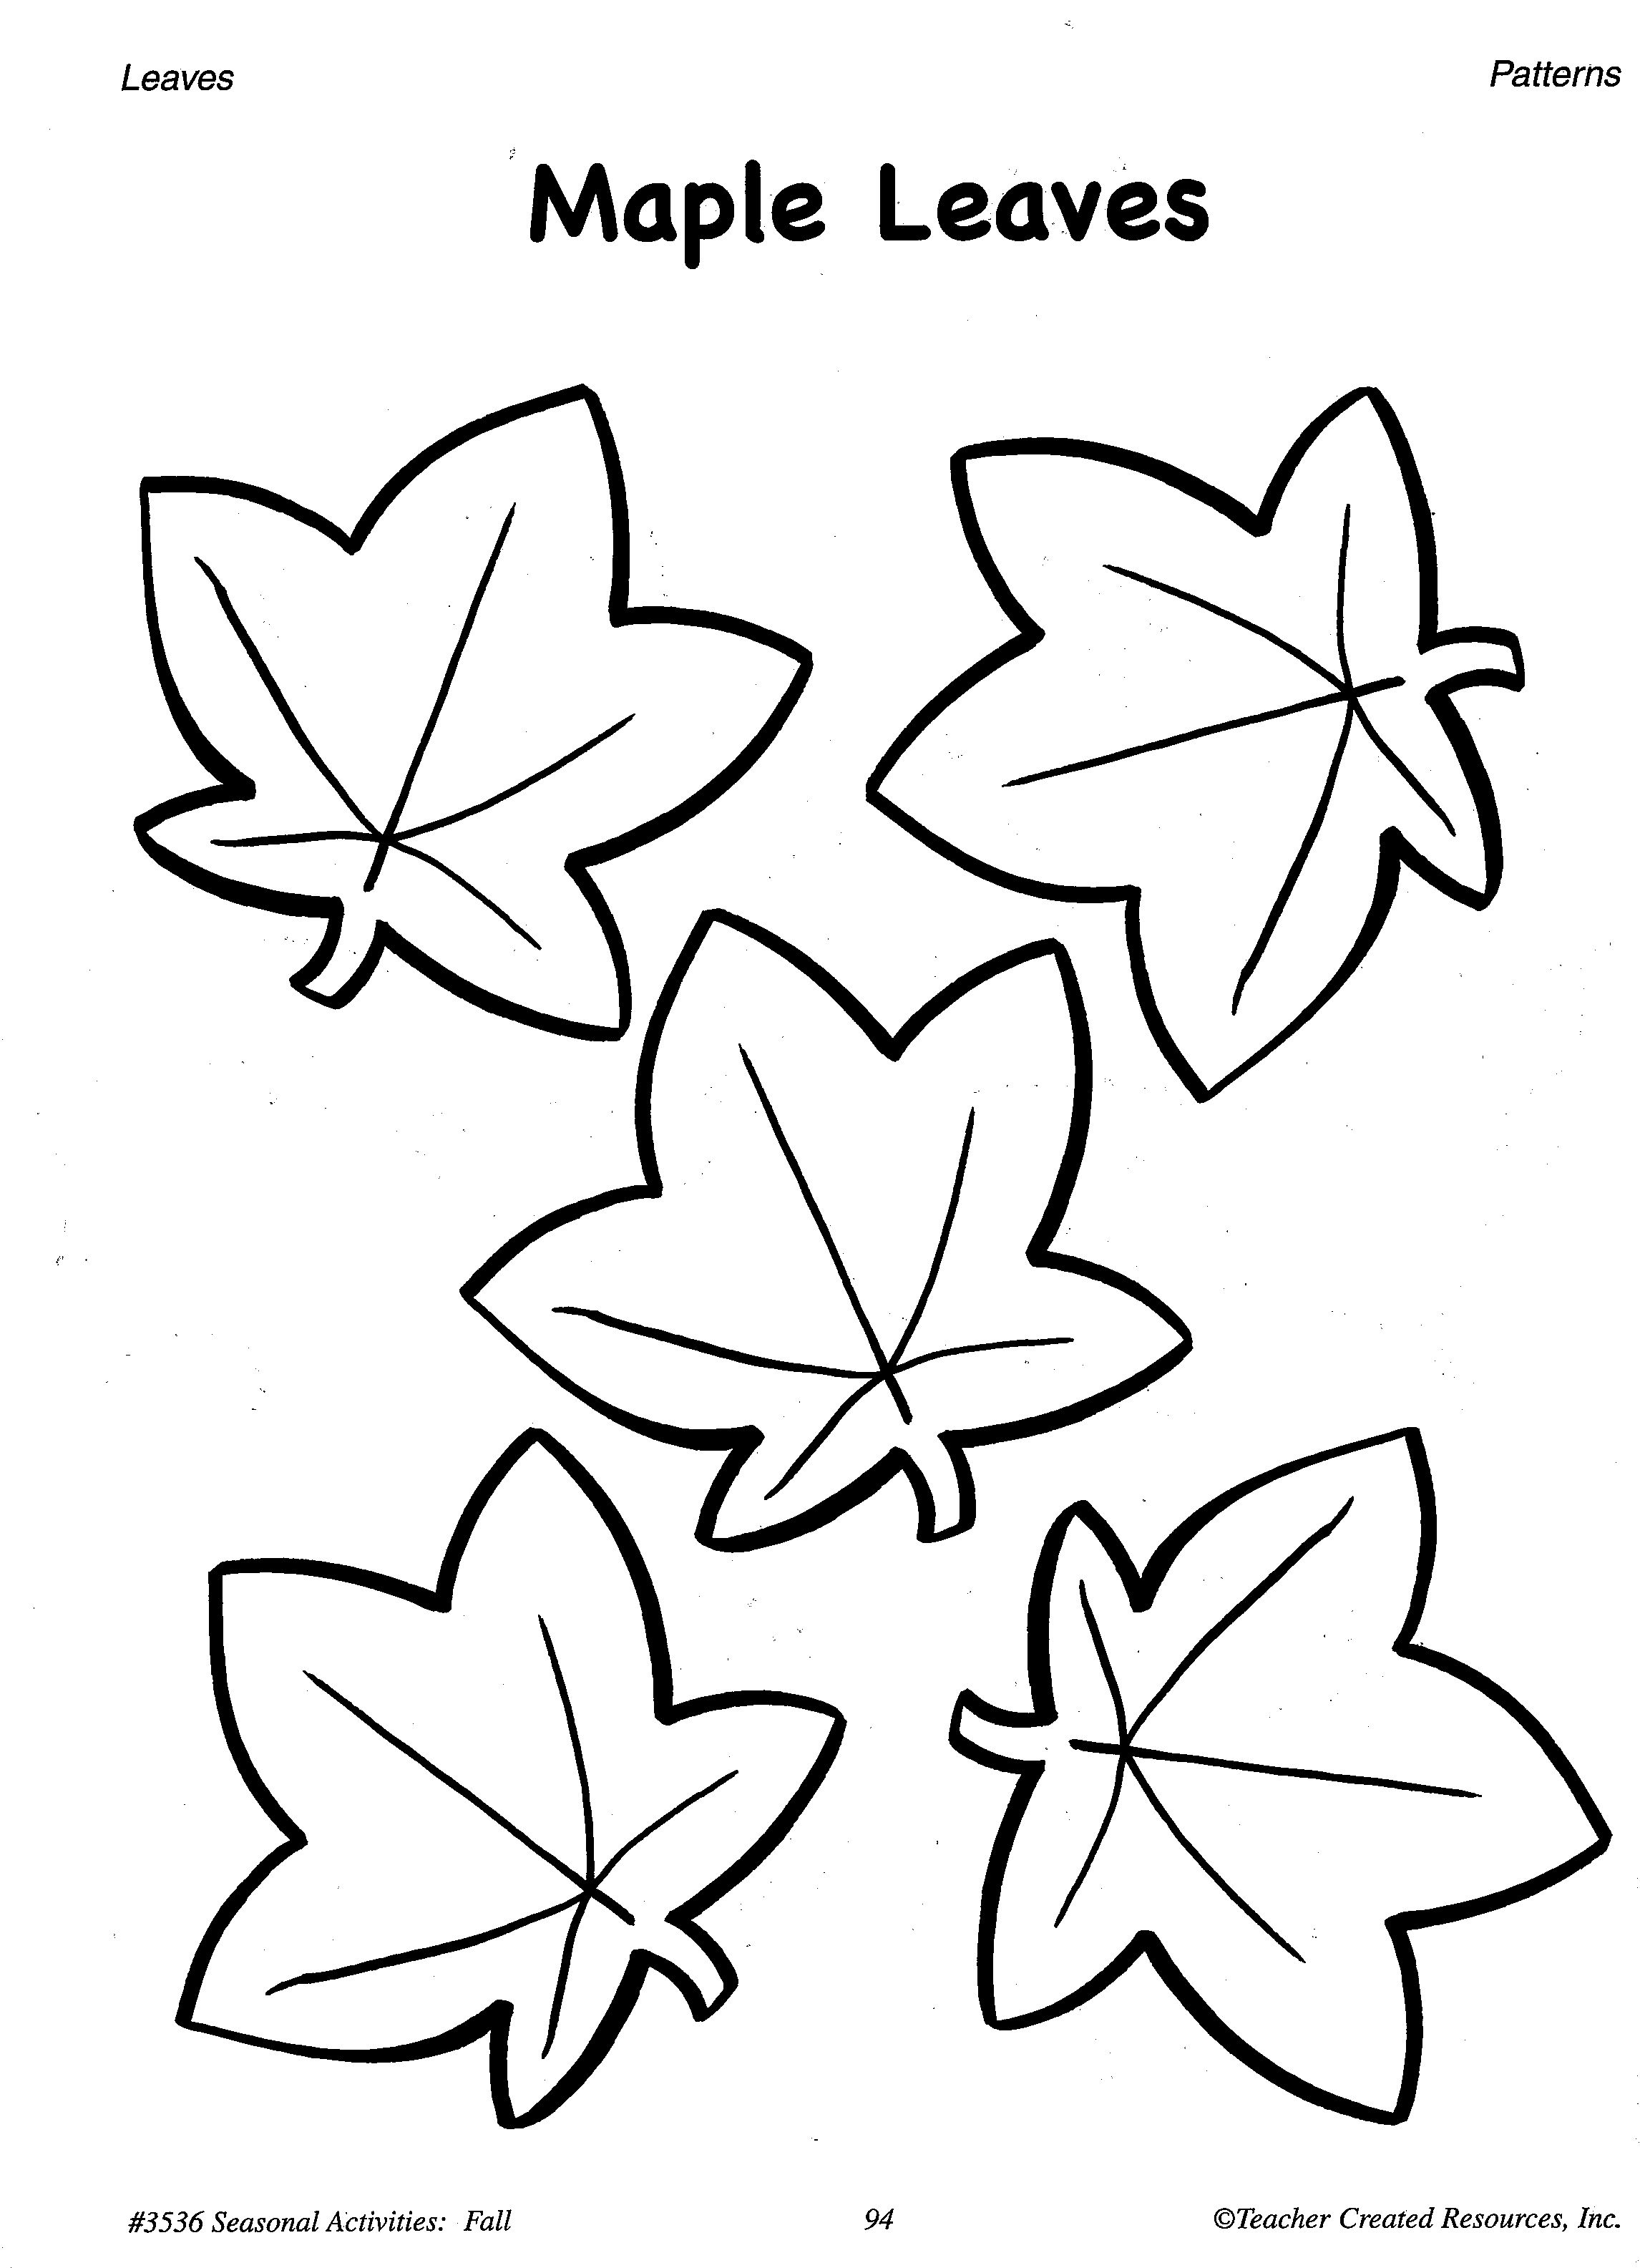 Traceable Leaf Patterns - Coloring Home